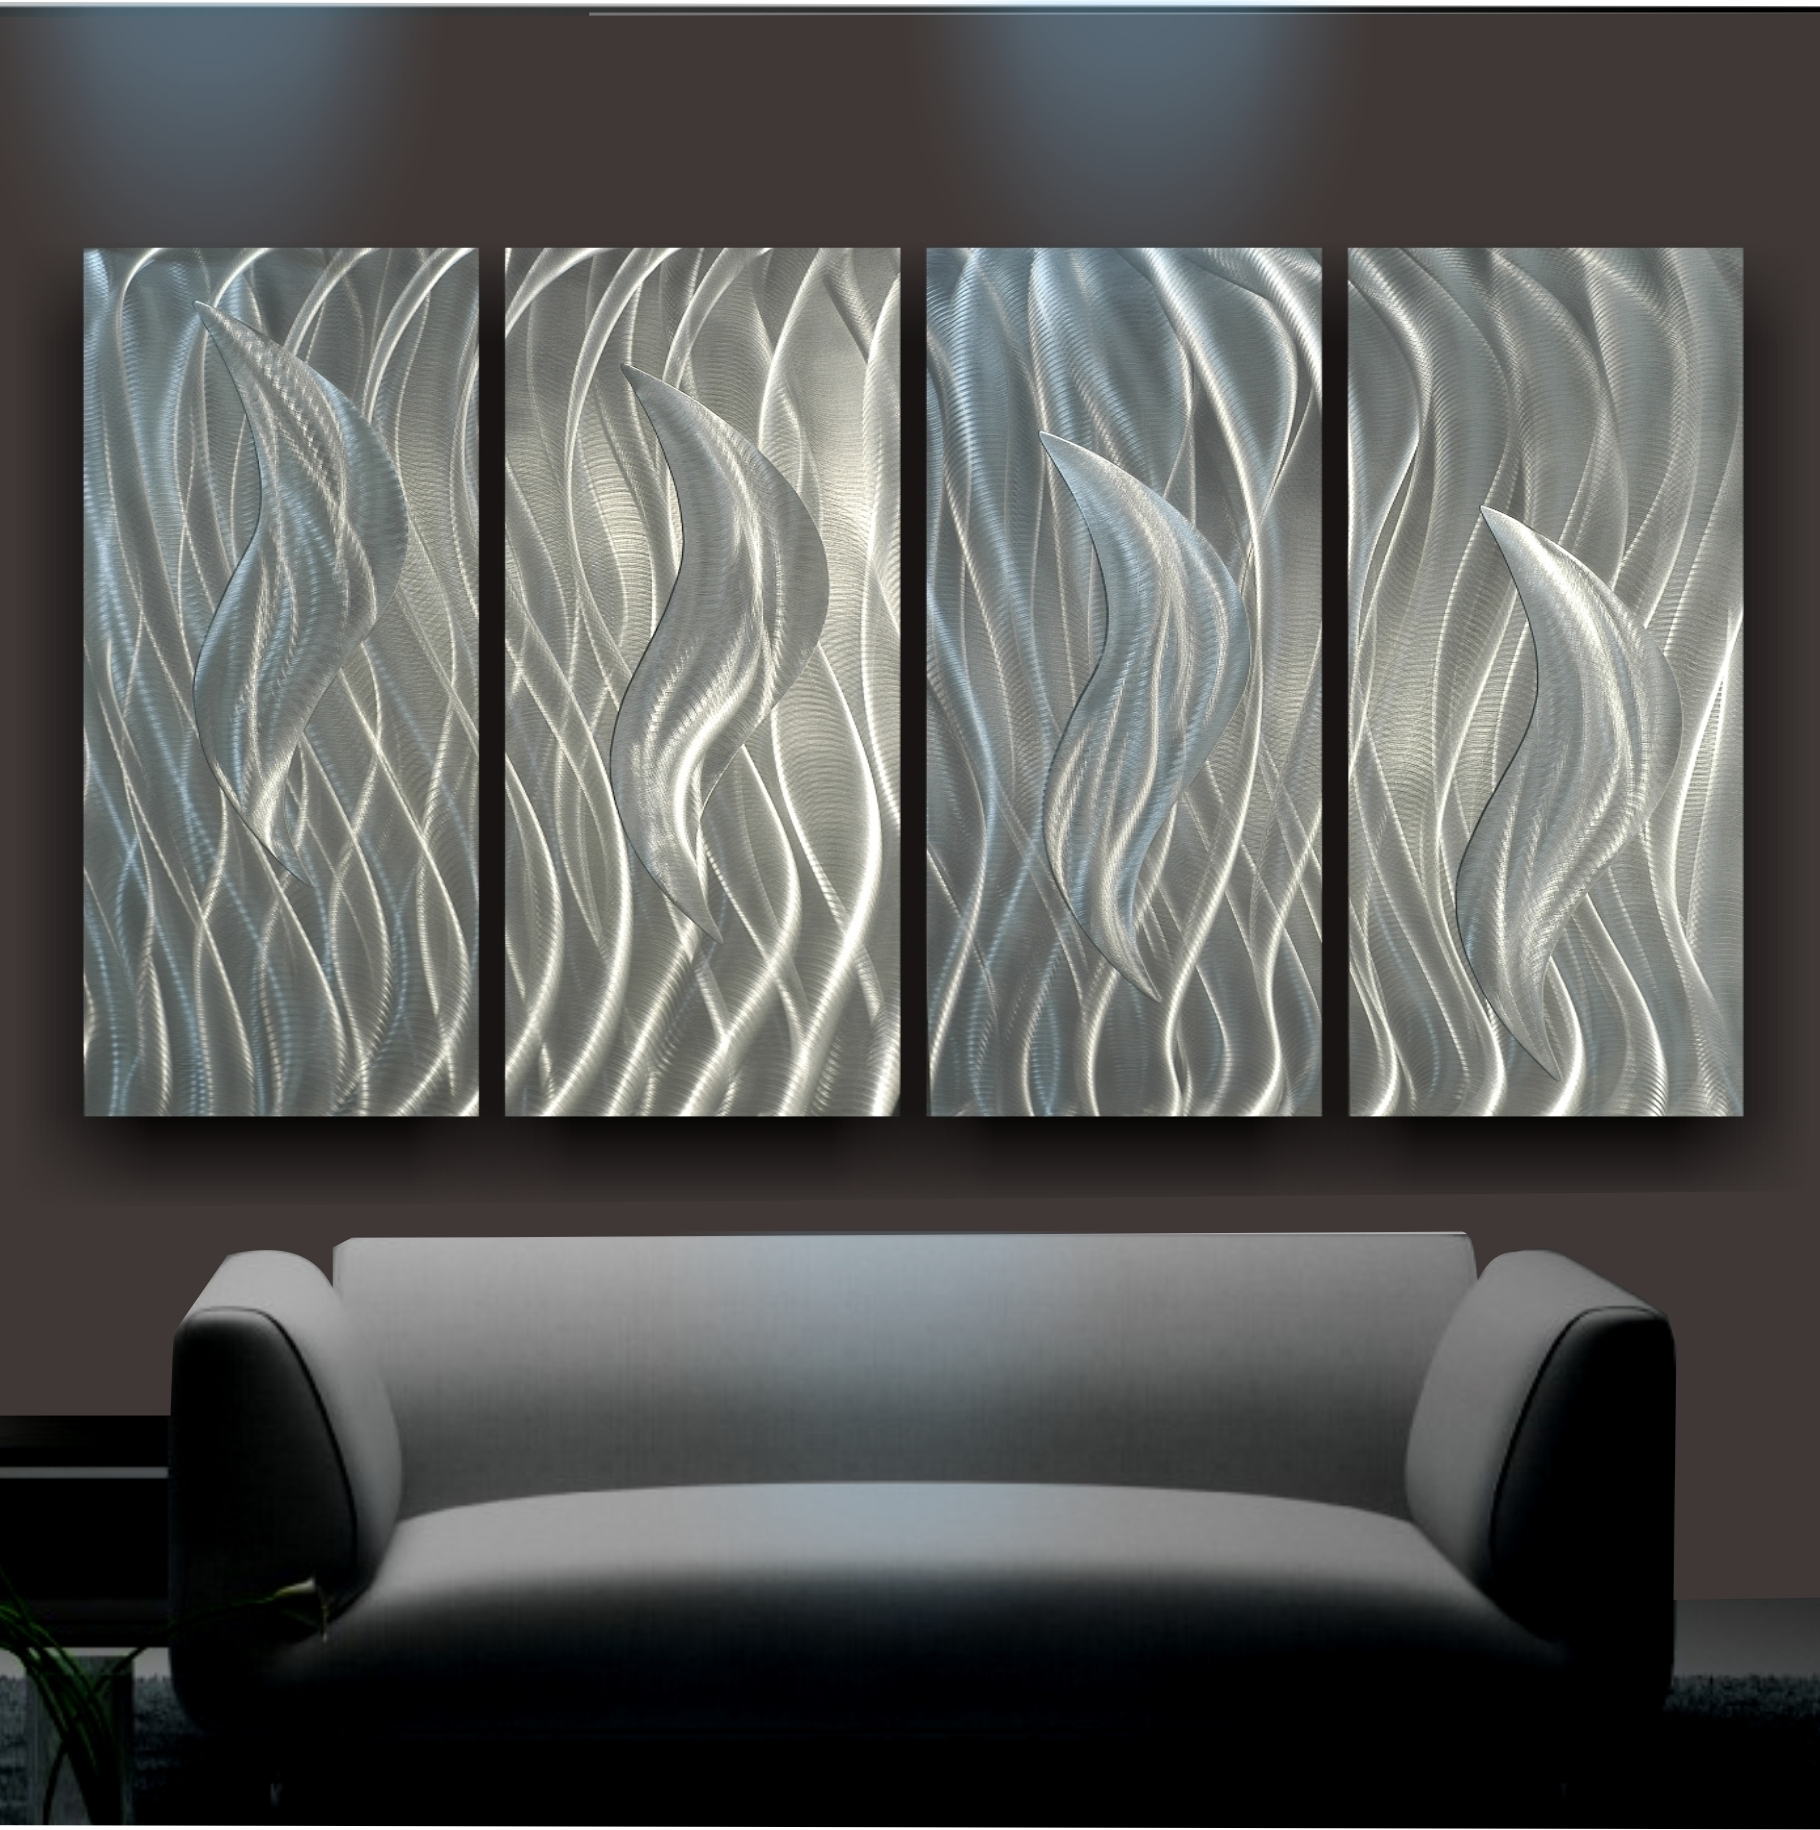 Steel Wall Surface Fine Art Is A Contemporary Sort Of Art Work For Most Popular Aluminum Abstract Wall Art (View 19 of 20)